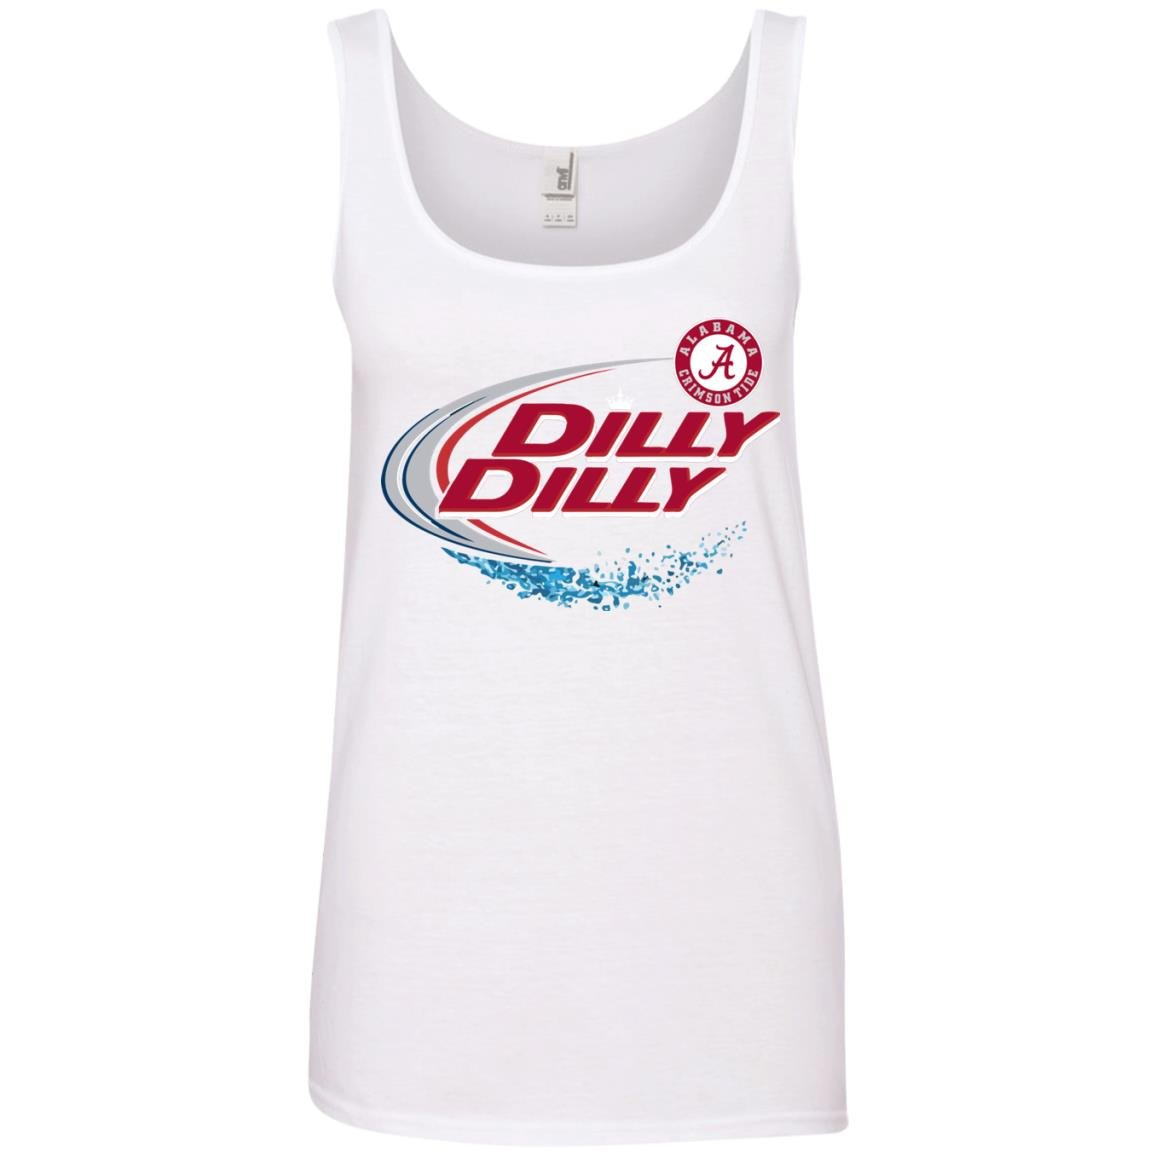 image 95 - Dilly Dilly T-shirt Crimson Tide